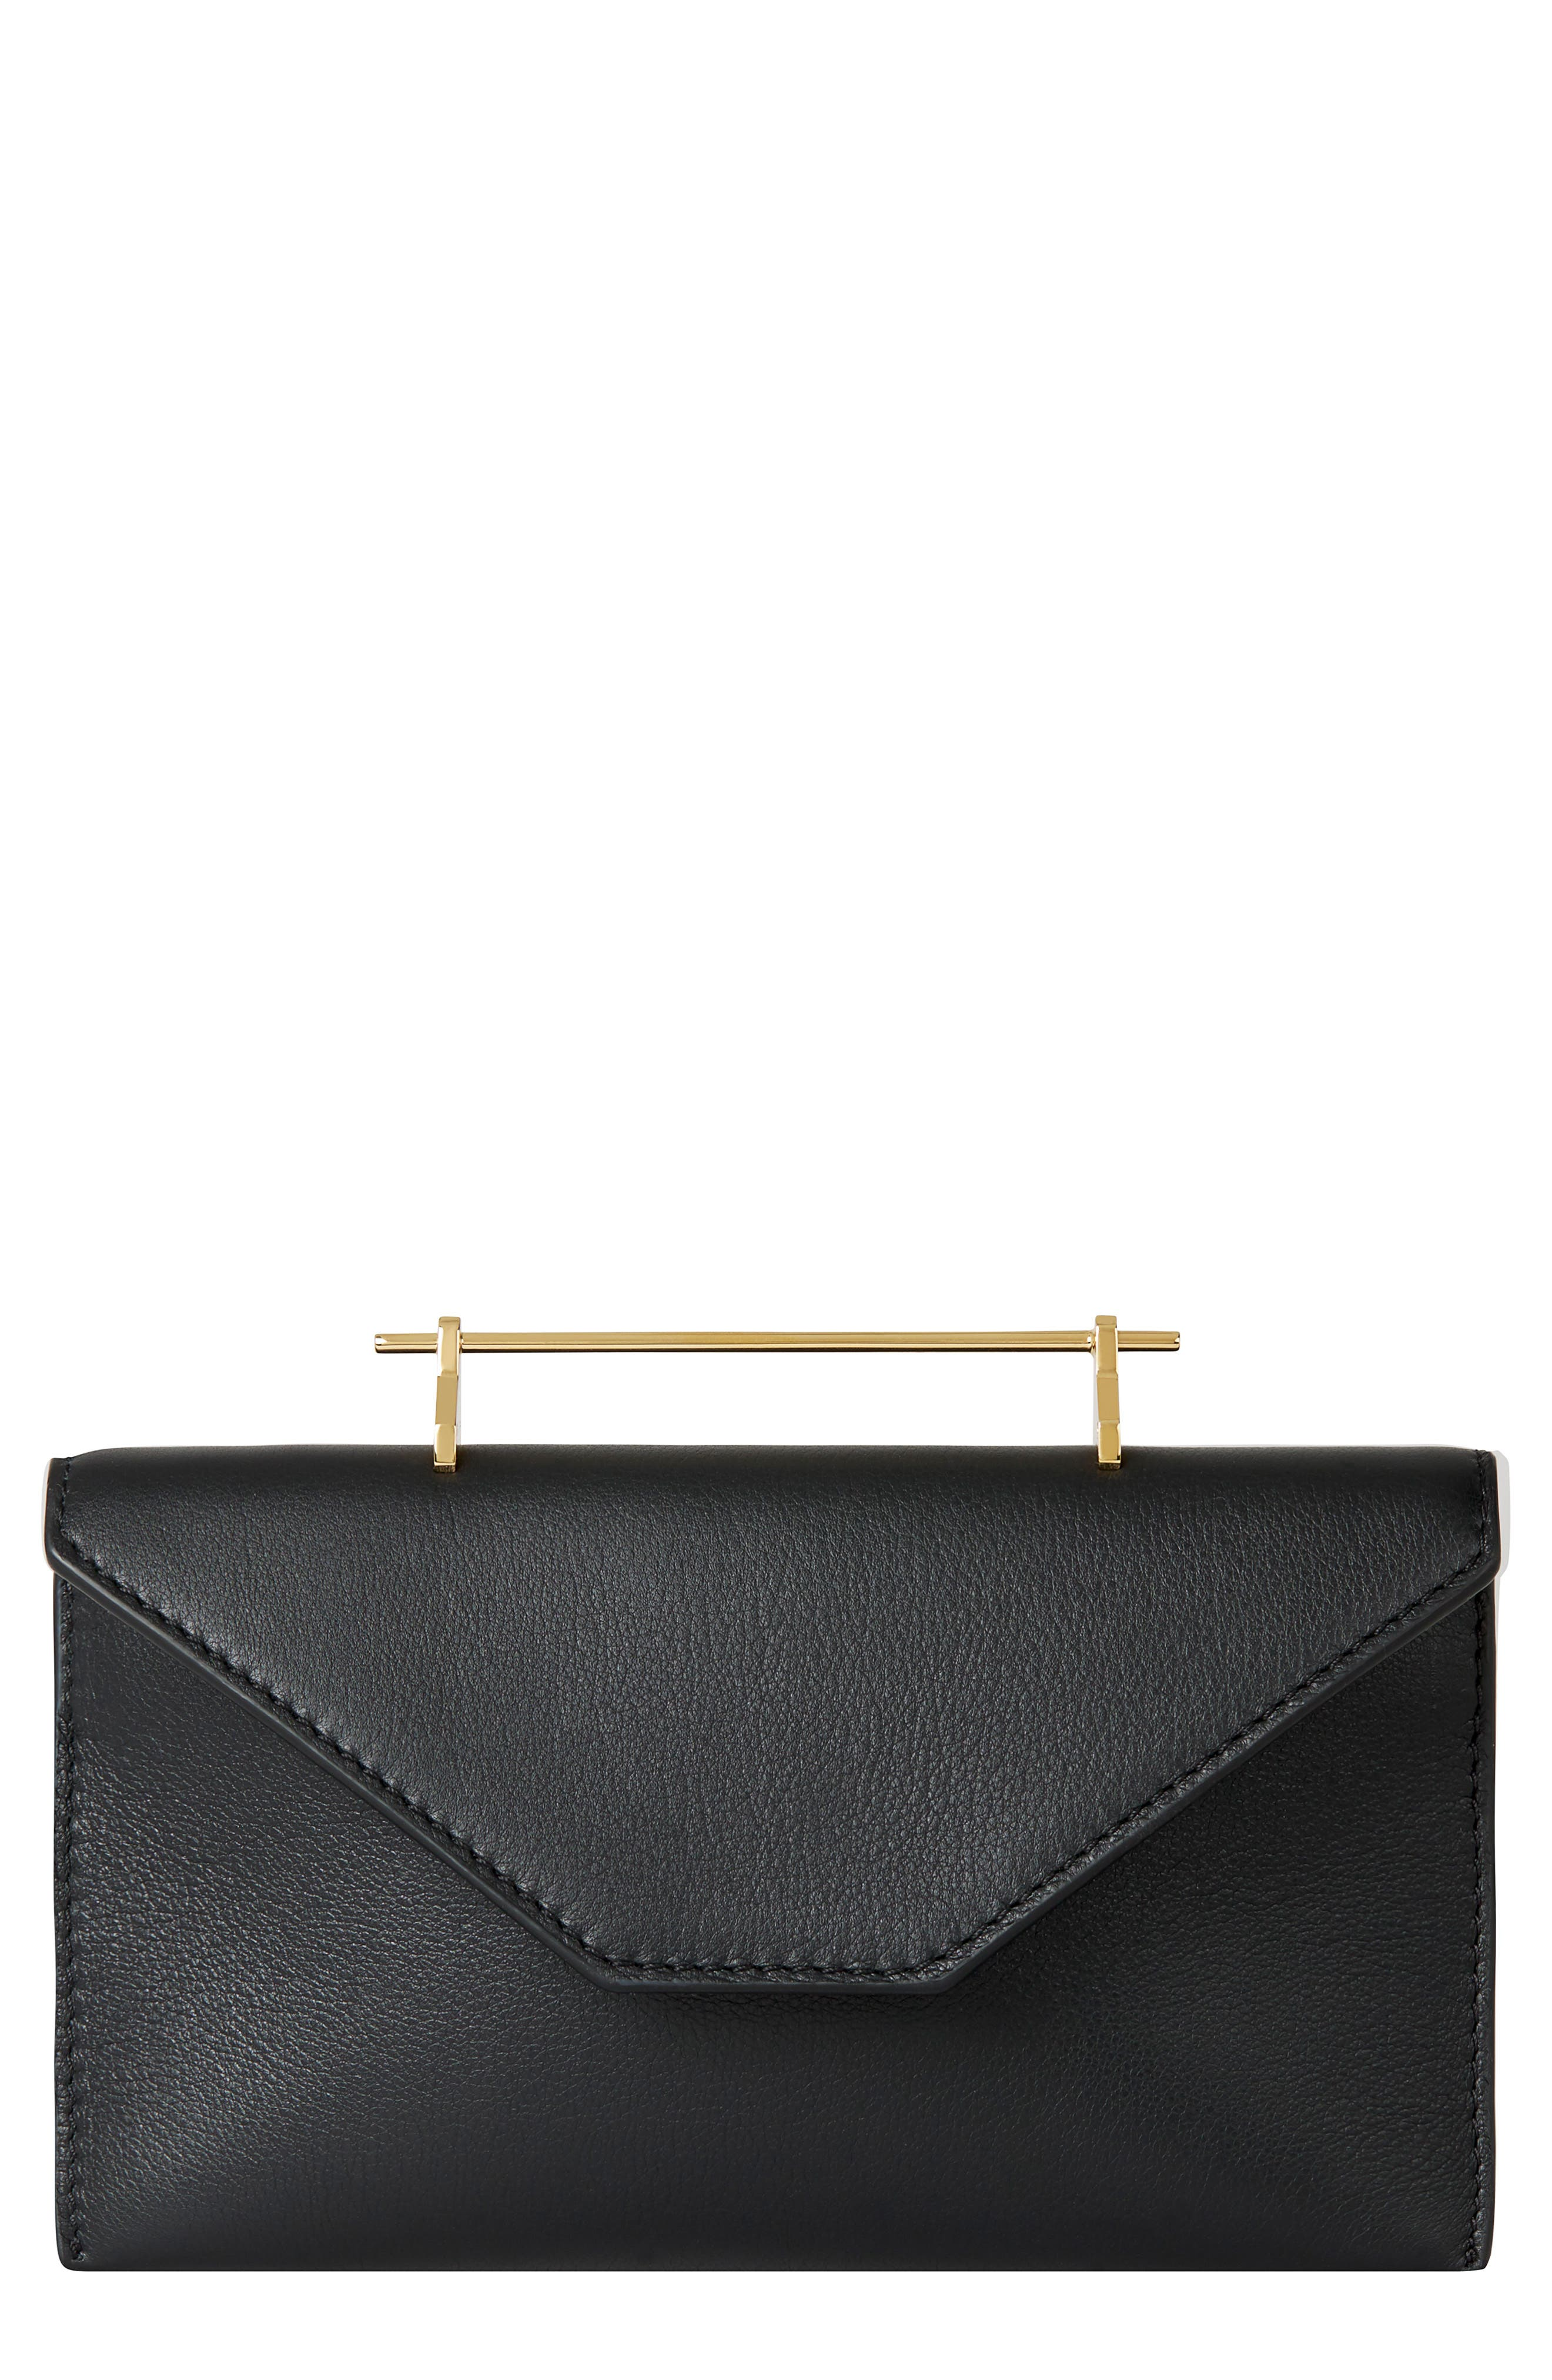 M2Malletier Annabelle Calfskin Leather Clutch